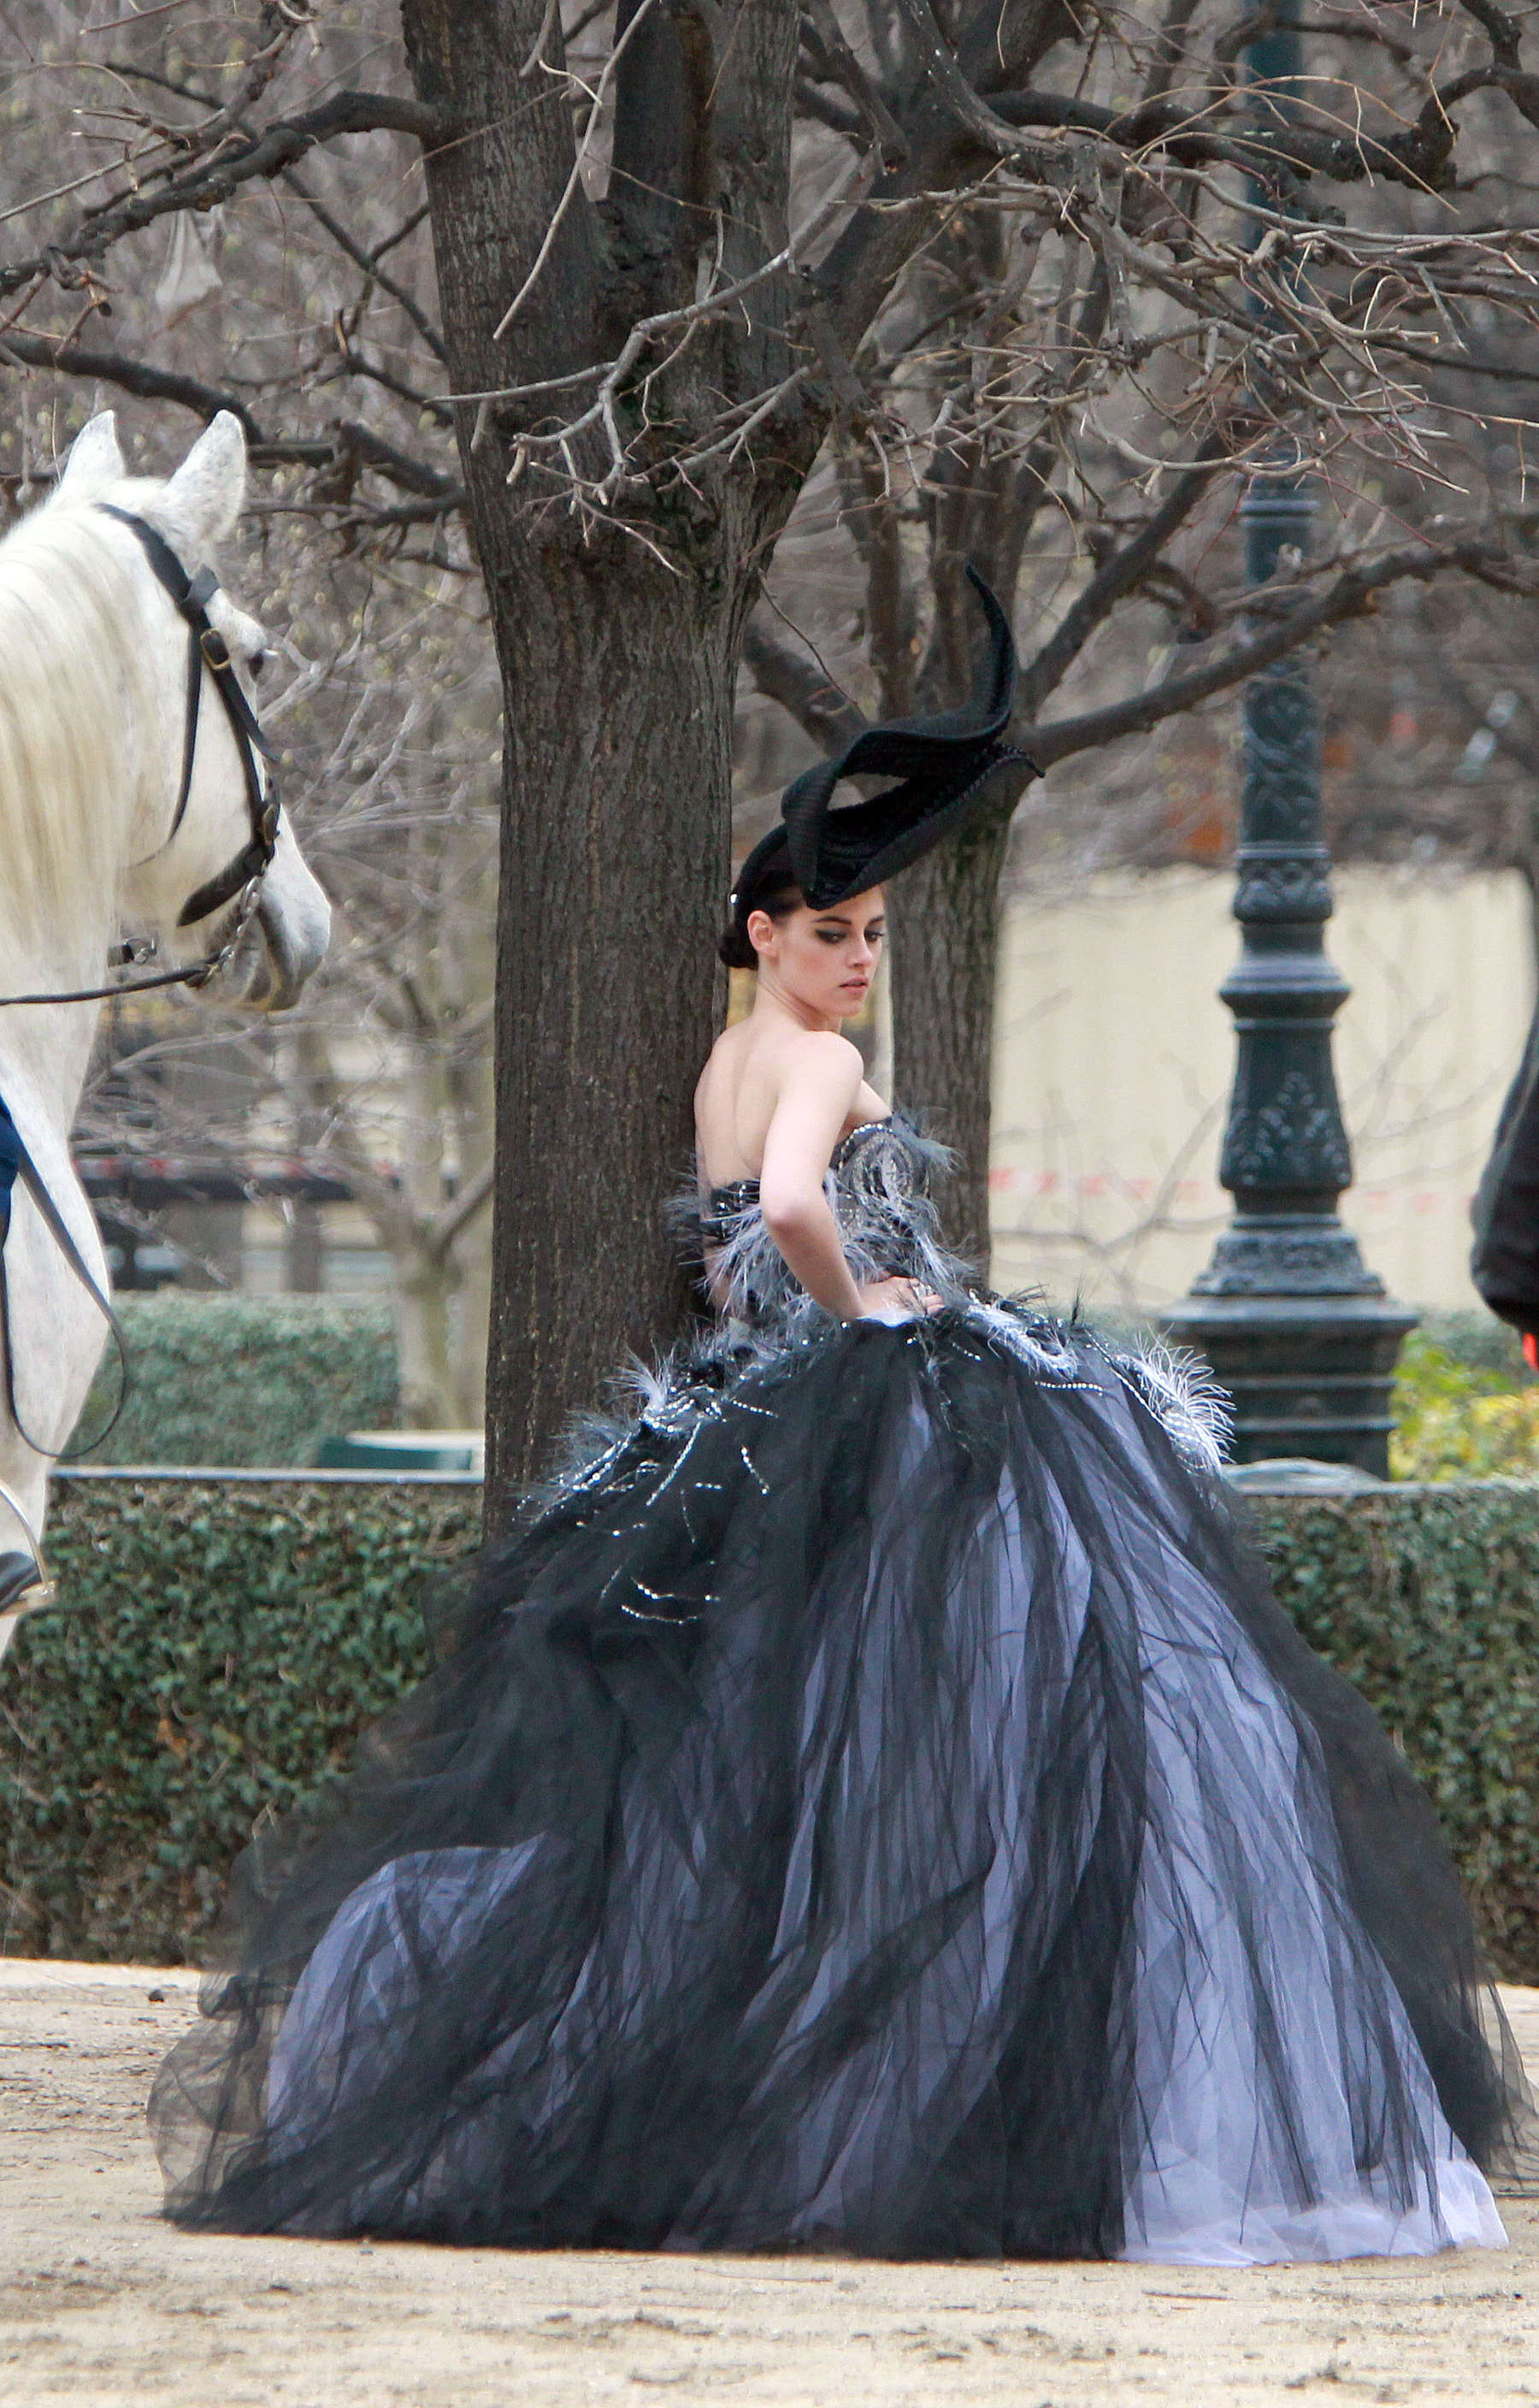 Kristen Stewart Wear Dress For Vanity Fair Photo Shoot-08